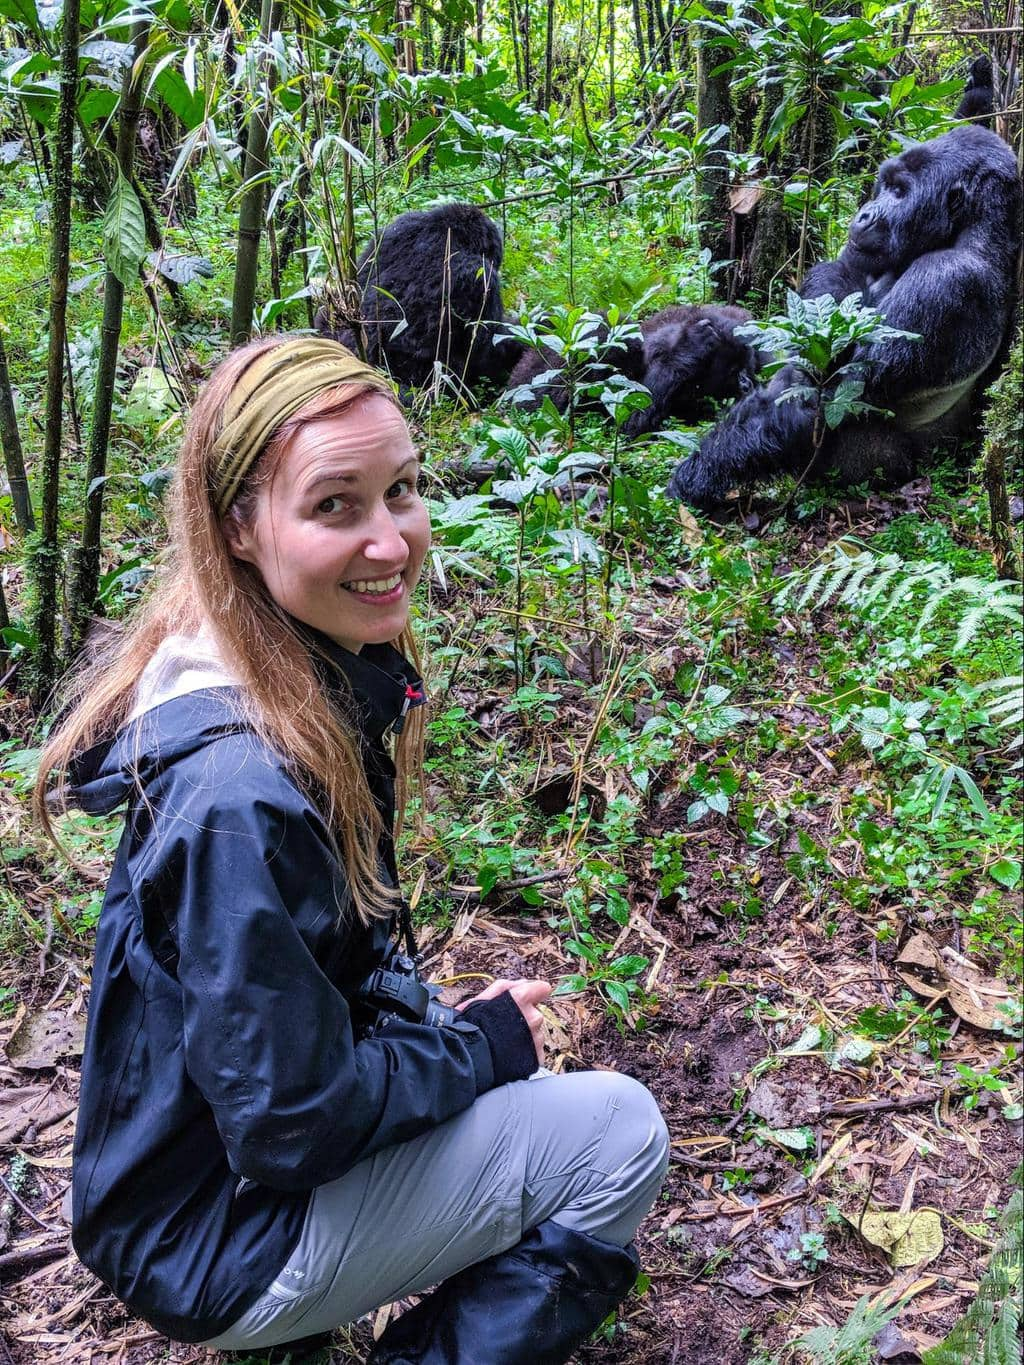 This is how close you can get to the gorillas in Rwanda